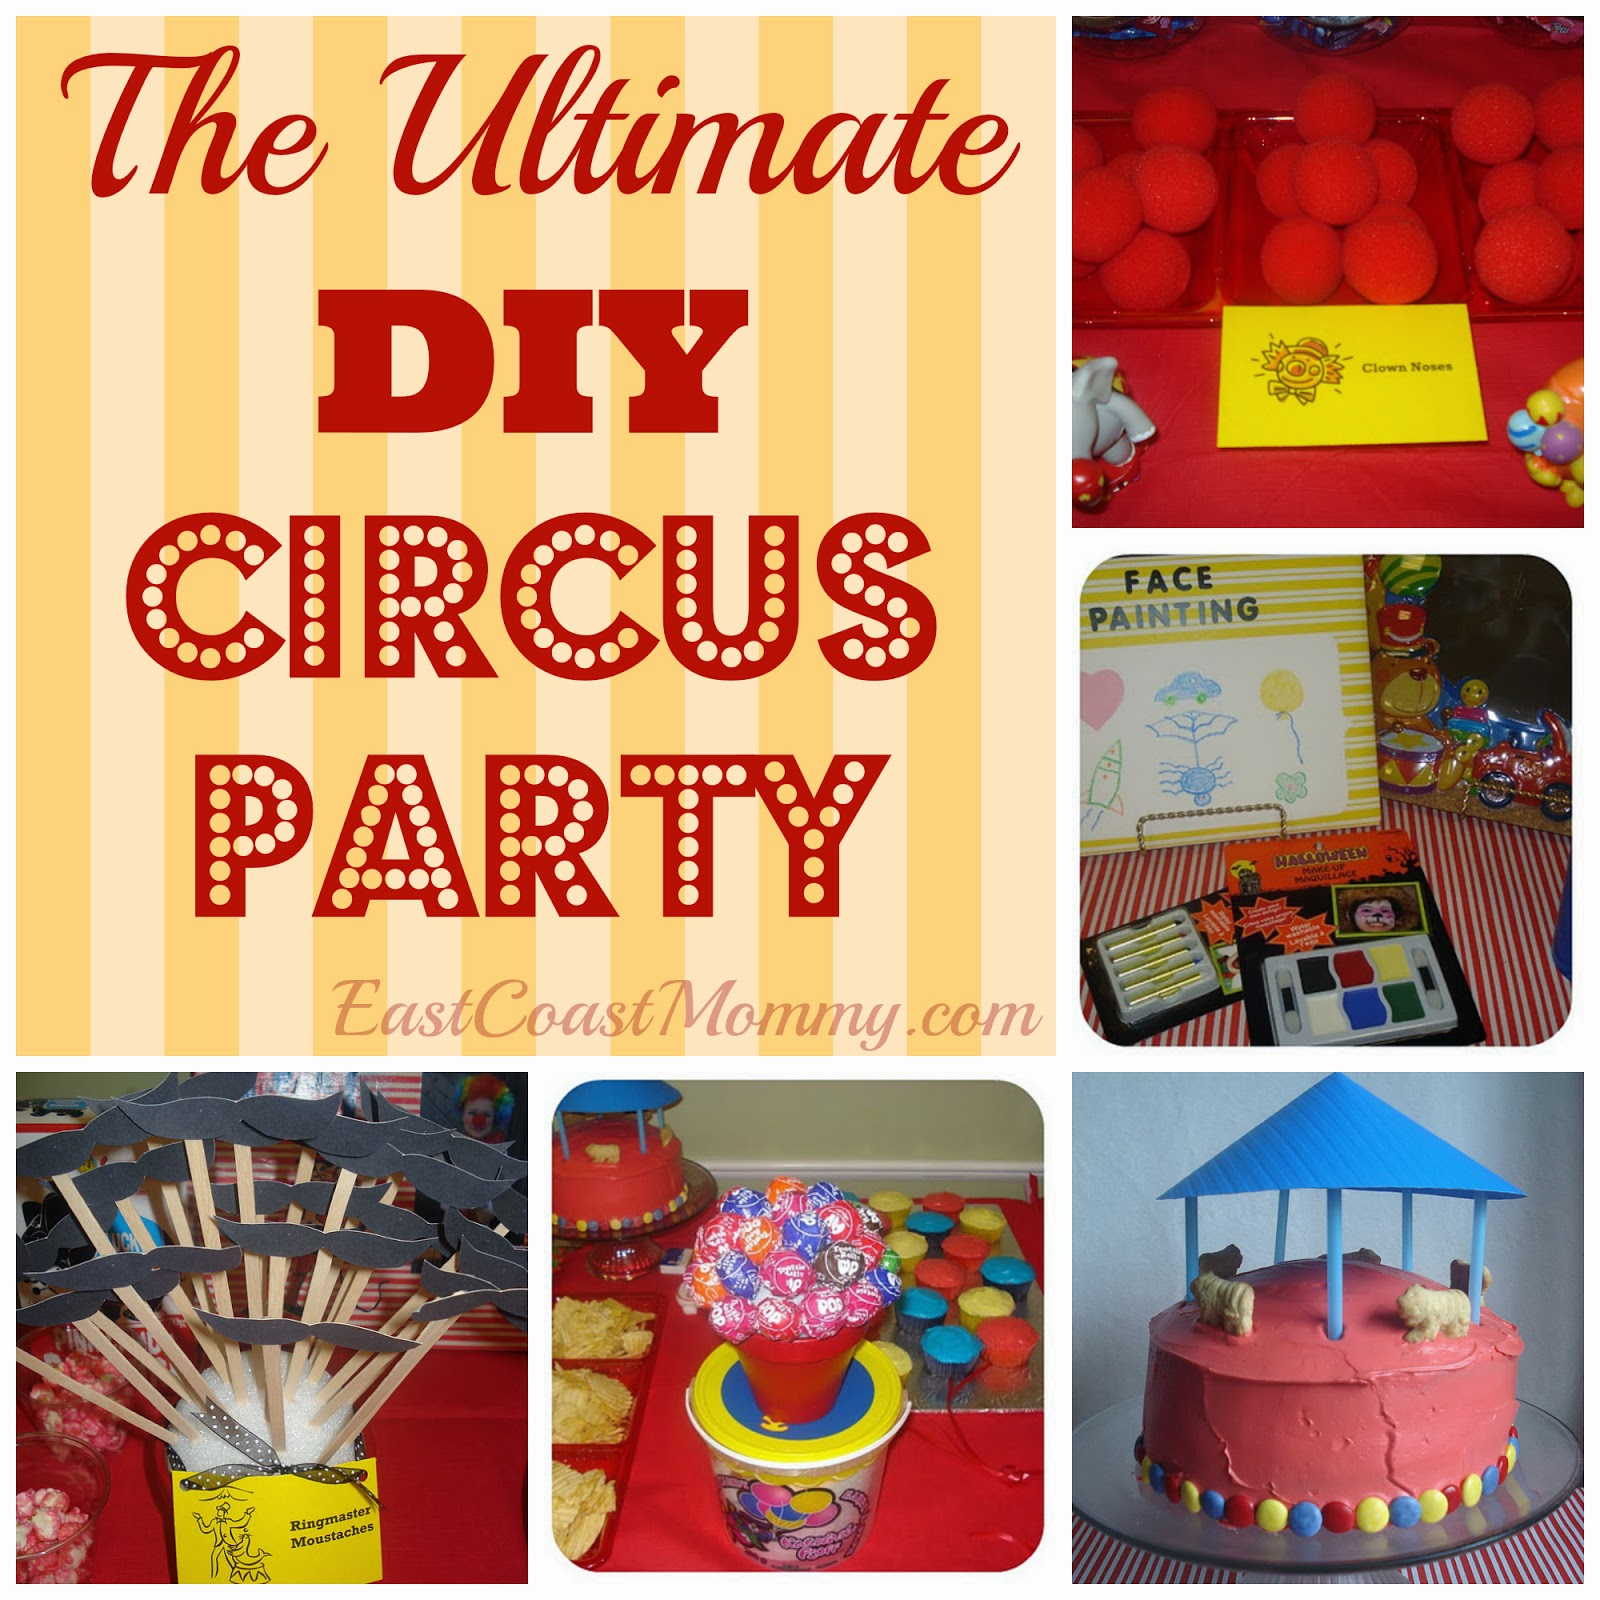 East Coast Mommy: 14+ DIY Party Themes And Tutorials